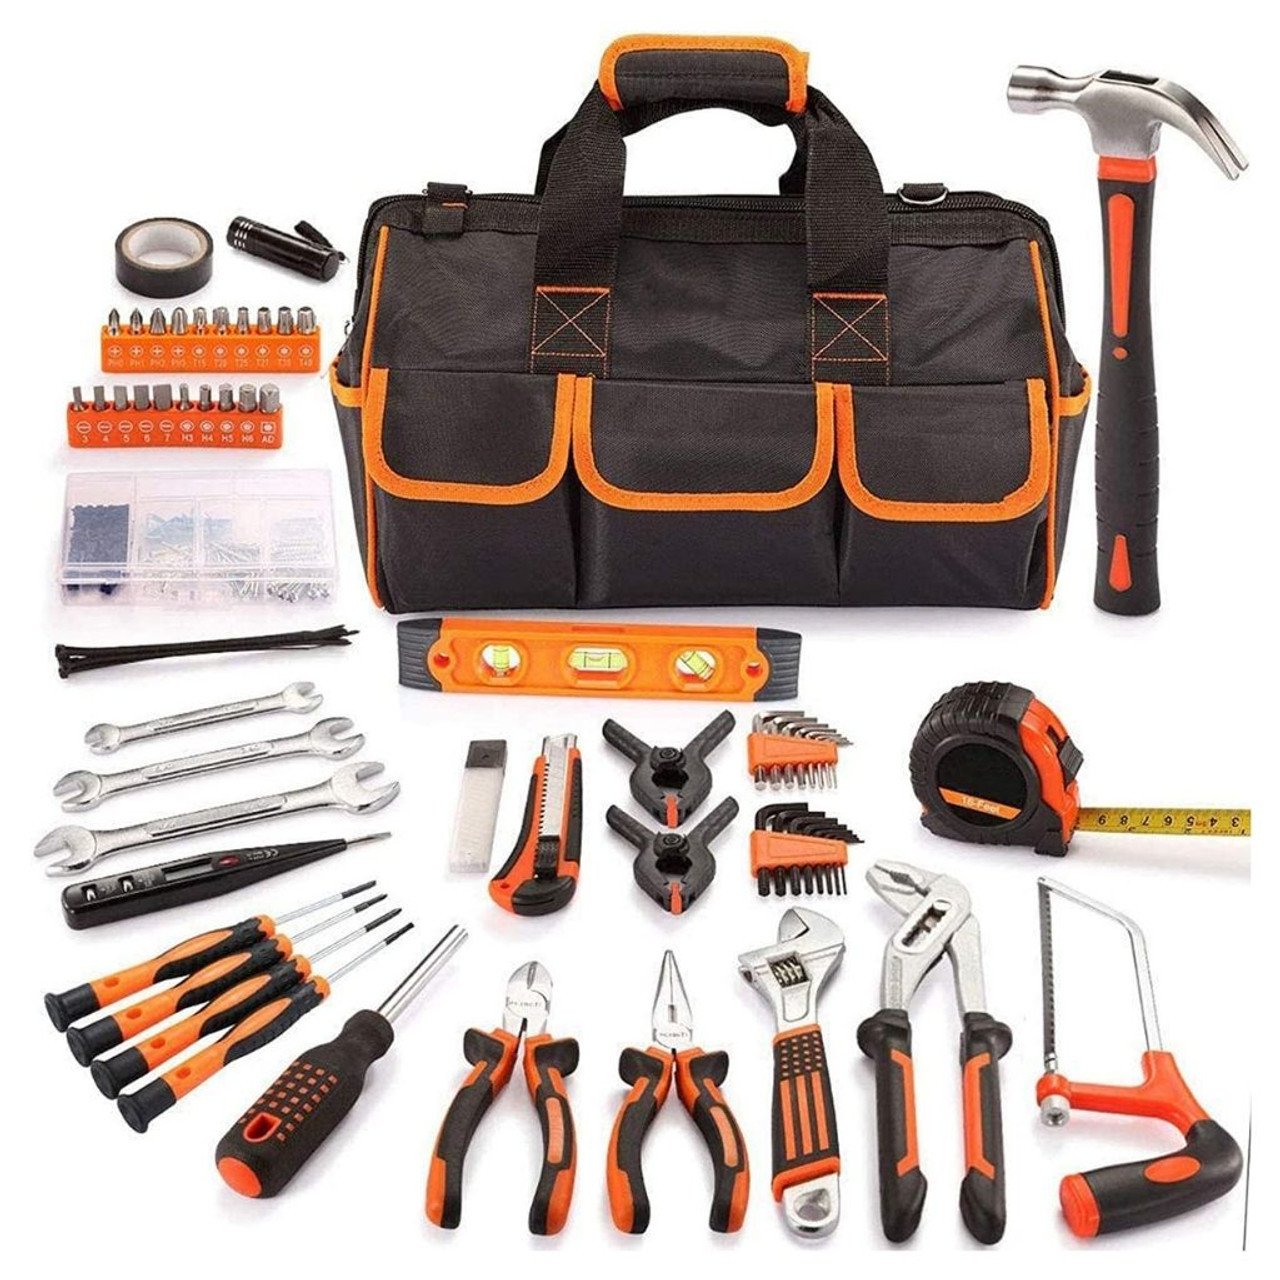 169-Piece Premium Tool Kit with 16-Inch Tool Bag $49.99 (44% OFF)